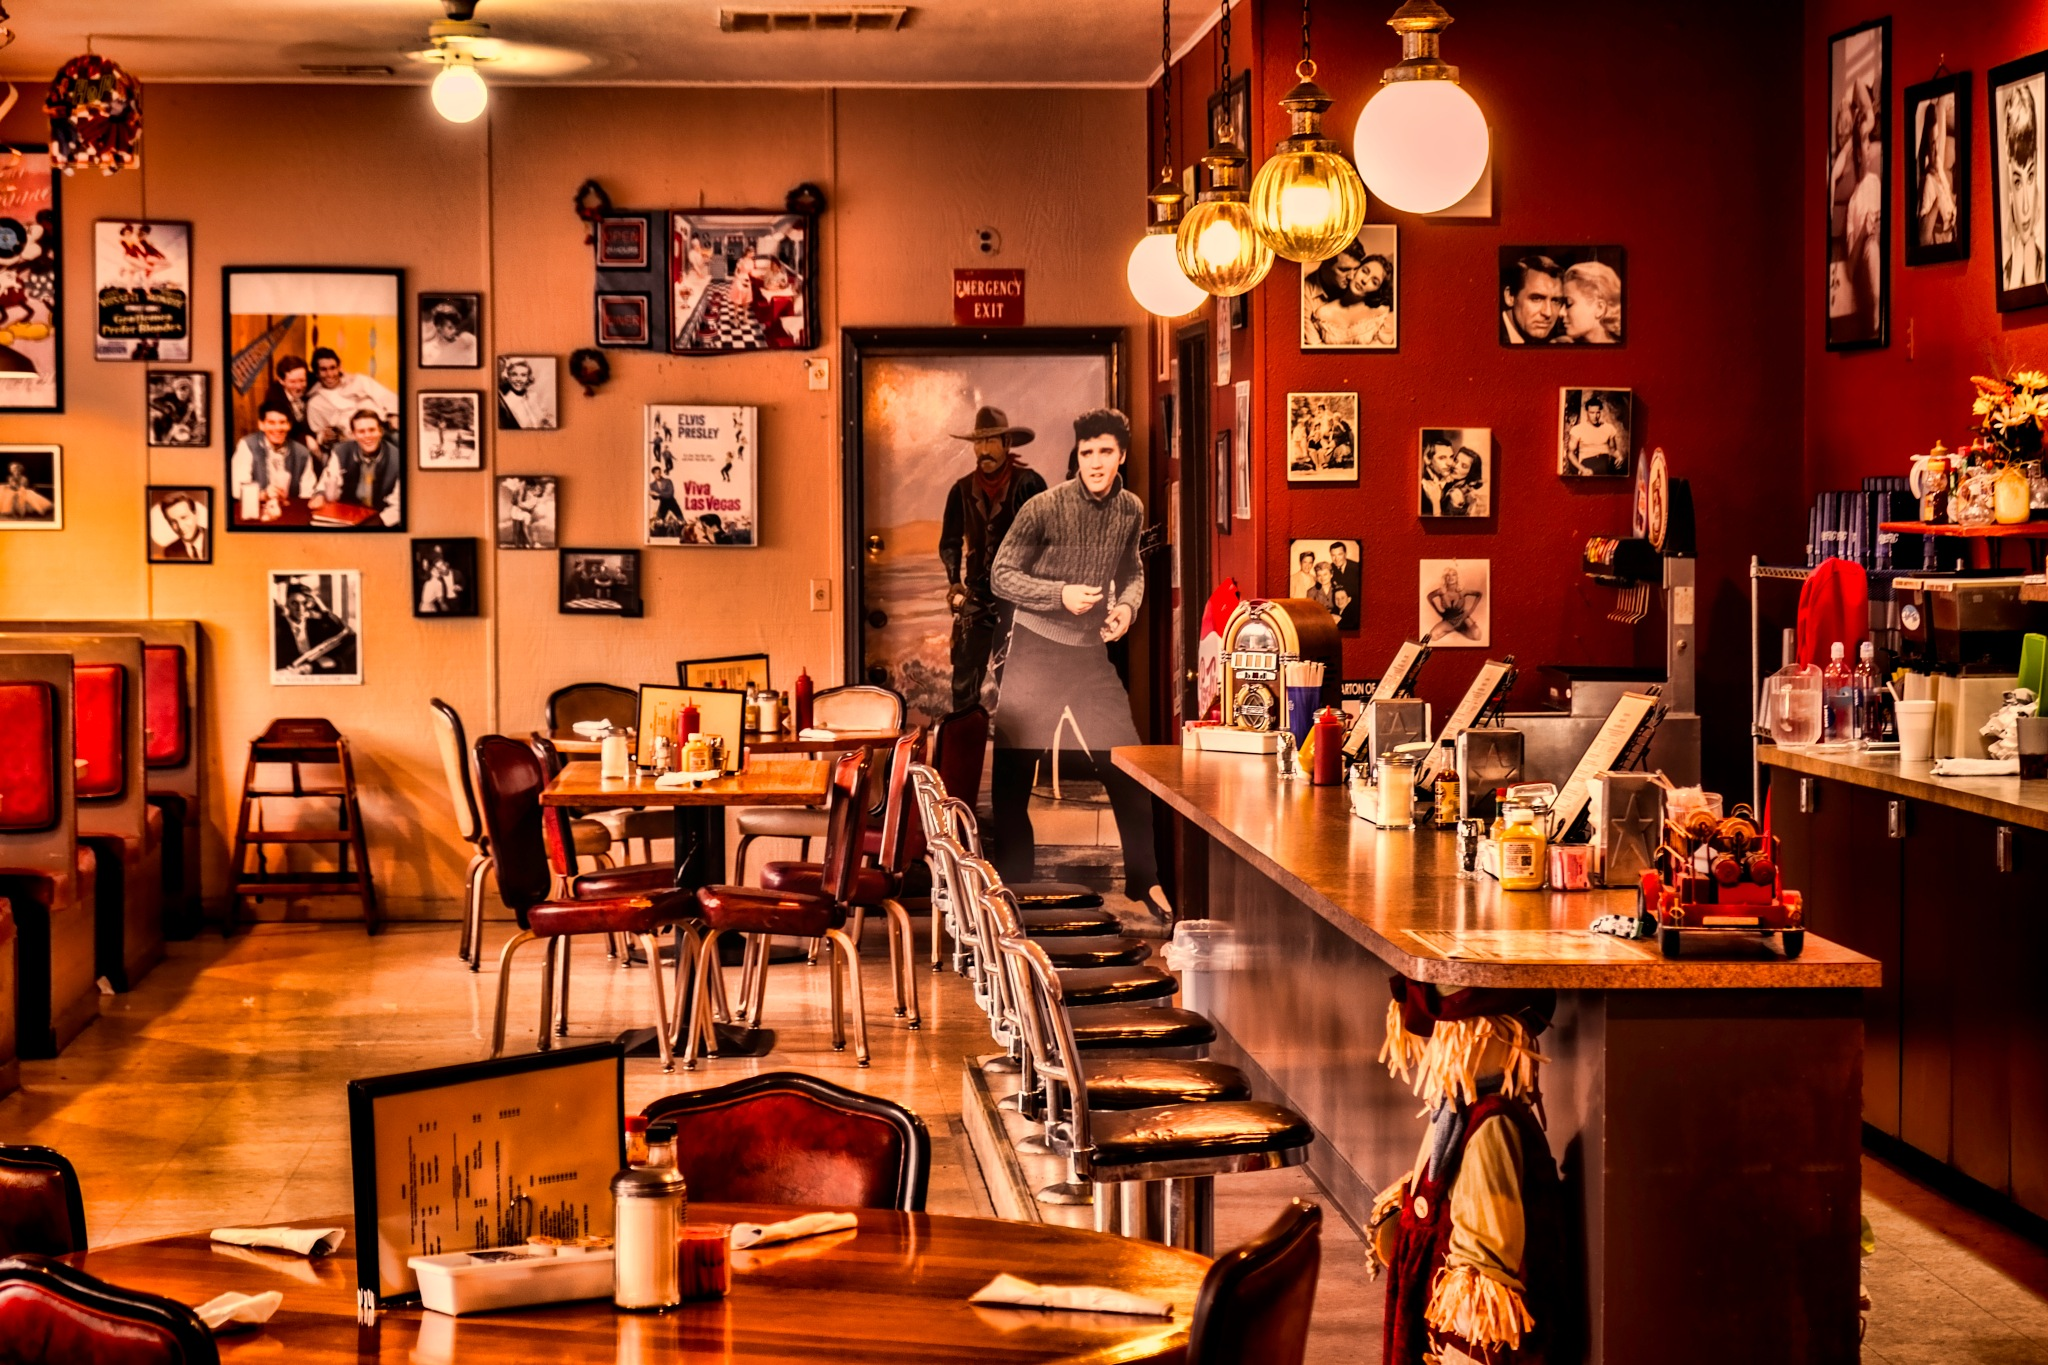 Small town Diner  by Mike Adams